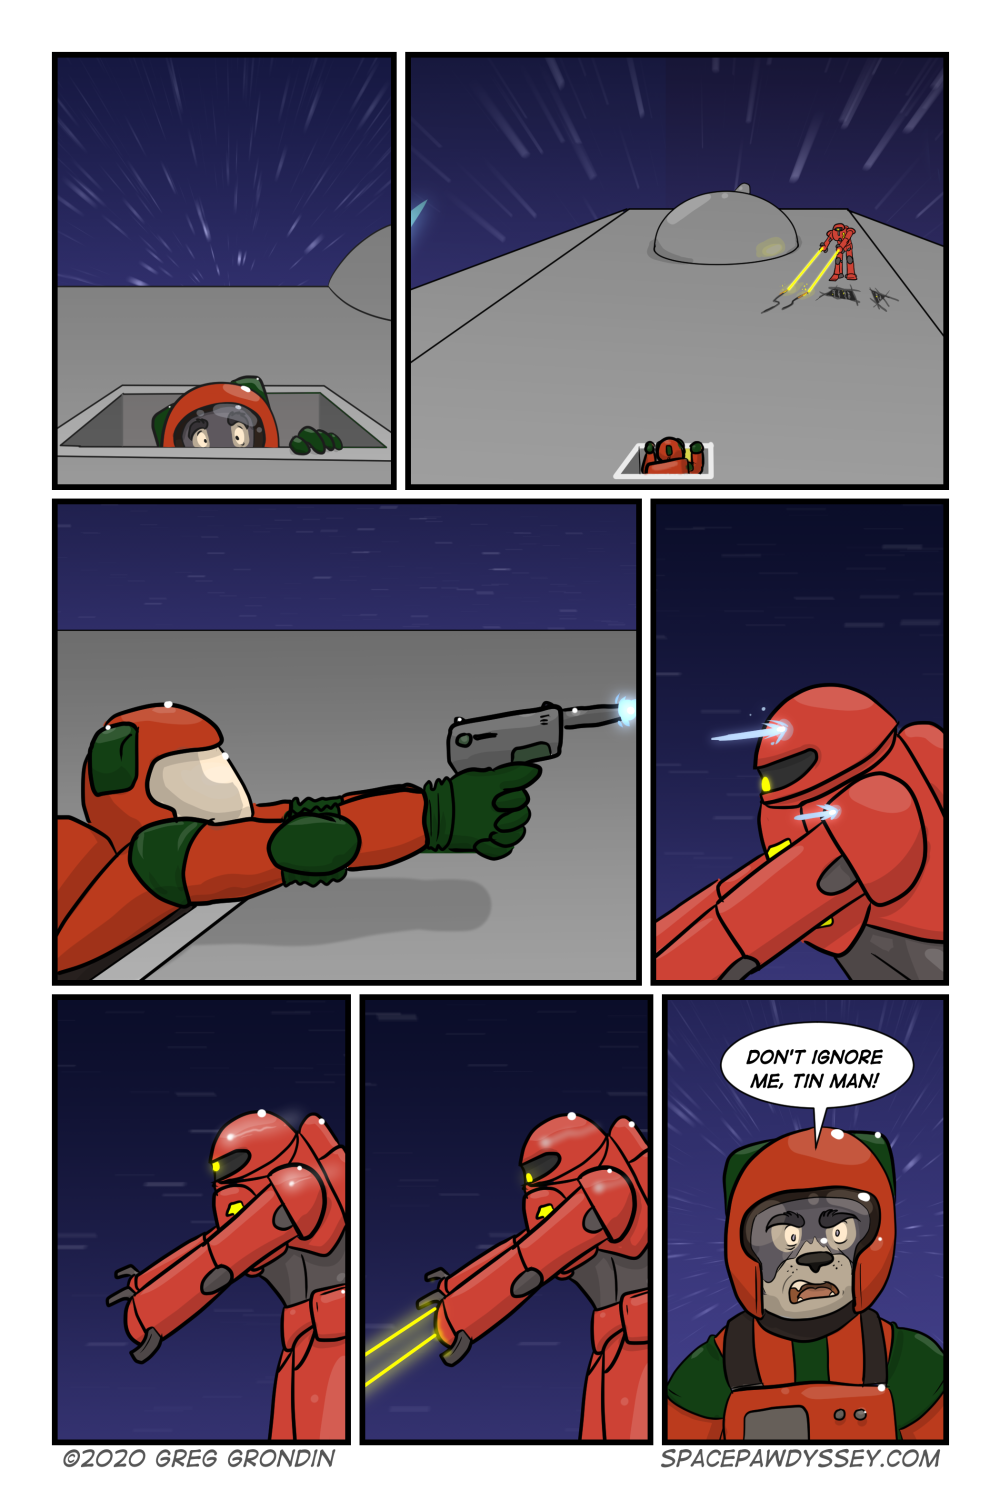 Space Pawdyssey #332